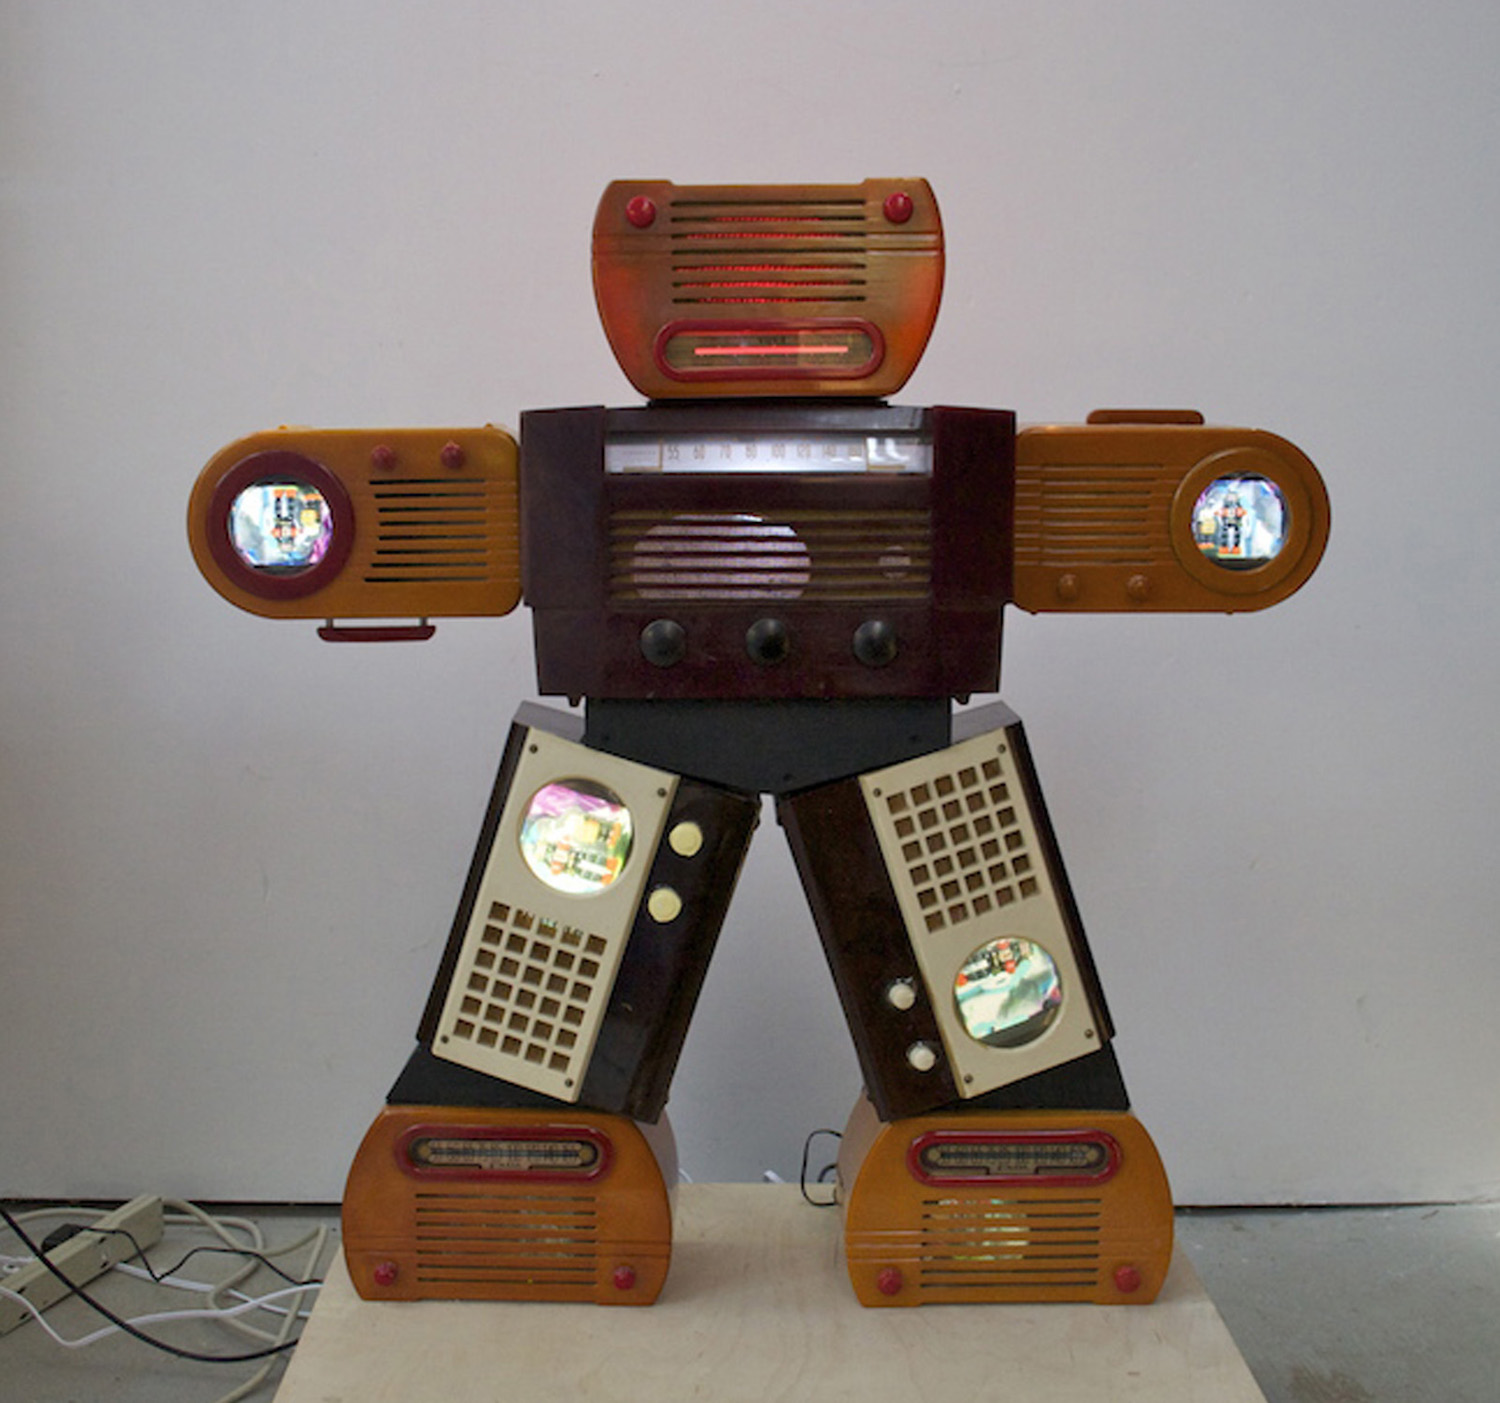 Nam June Paik, 'Bakelite Robot', 2002, one-channel video installation with 4 14.2cm LCD monitors, 2 10.2cm LCD colour monitors, coloured electric lights, 92 x 92 x 19.7cm. Image courtesy of Gagosian Gallery.